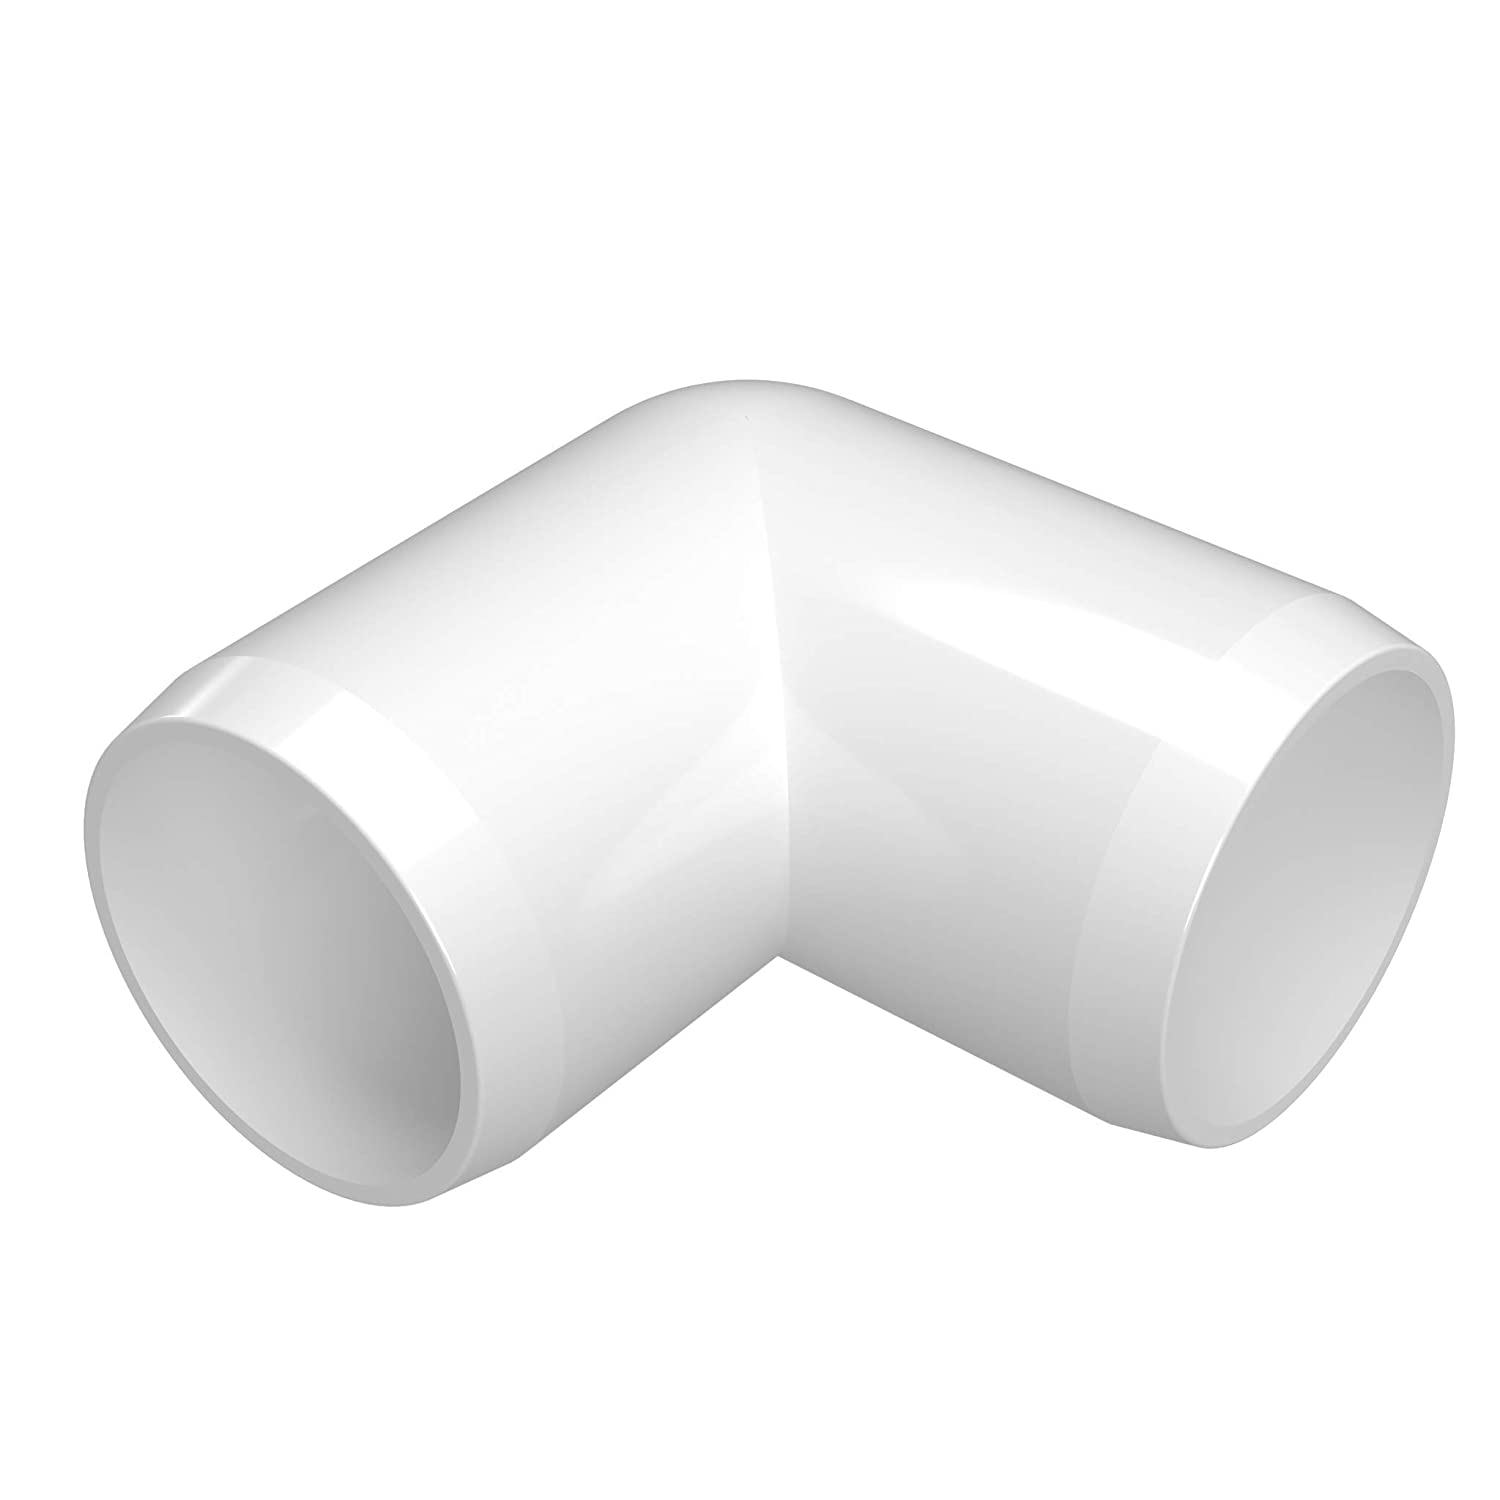 "FORMUFIT F00190E-WH-4 90 Degree Elbow PVC Fitting, Furniture Grade, 1"" Size, White (Pack of 4)"